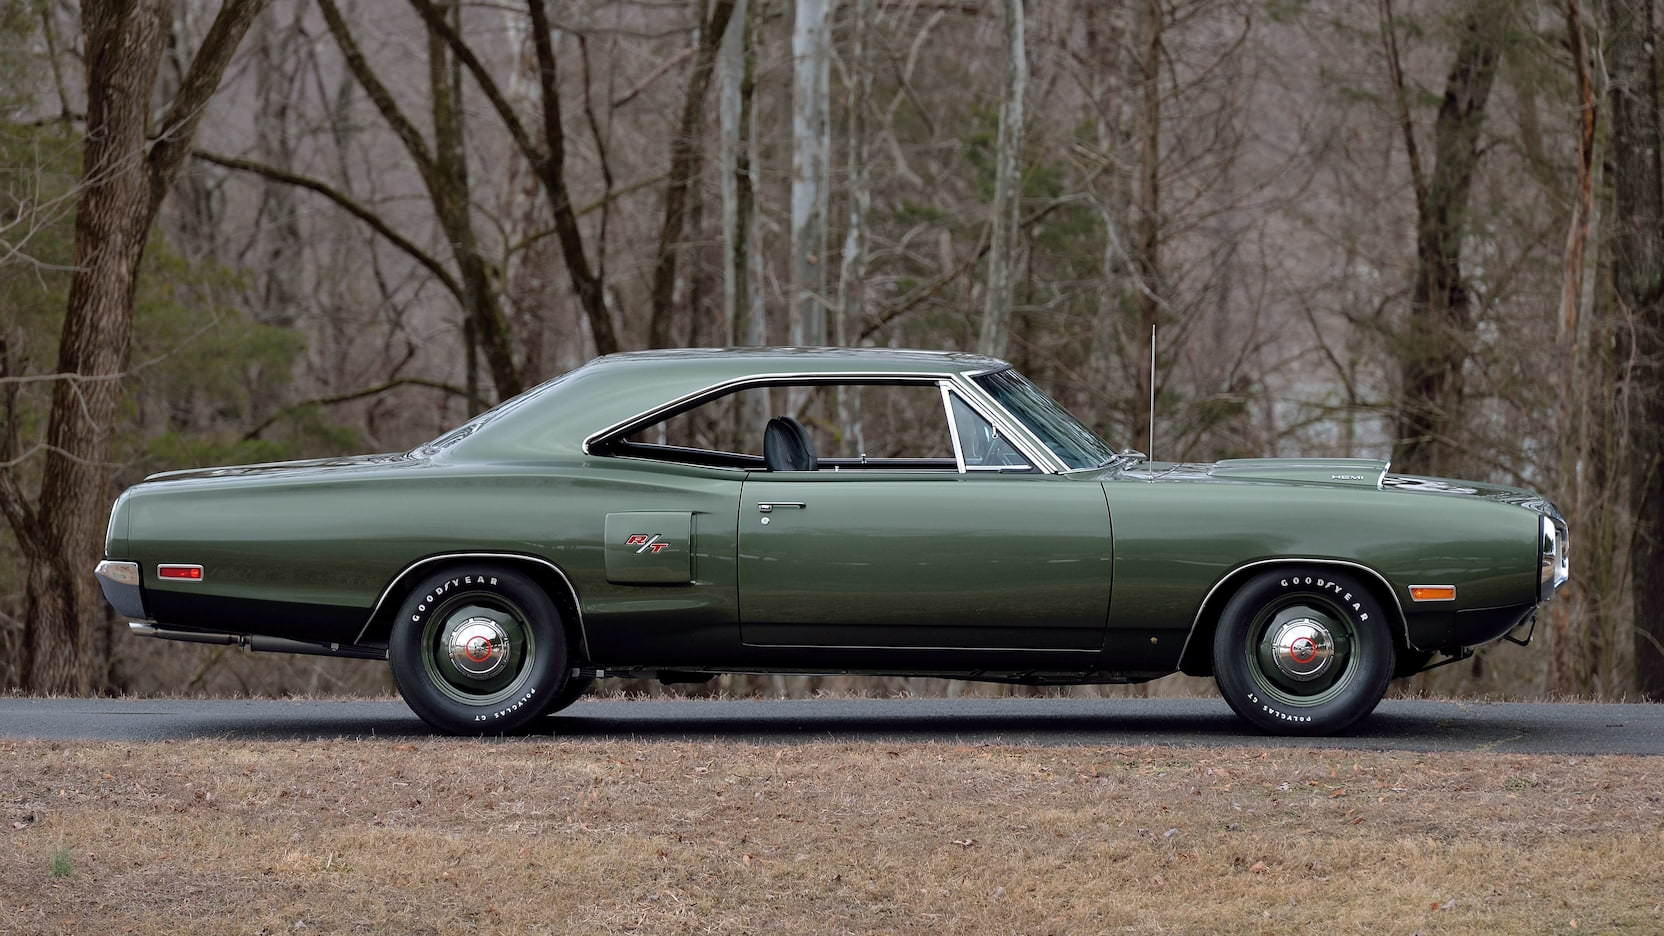 1 Of 4 Ever Made A 1970 Dodge Hemi Coronet R T A Rare 425 Hp American Muscle Car